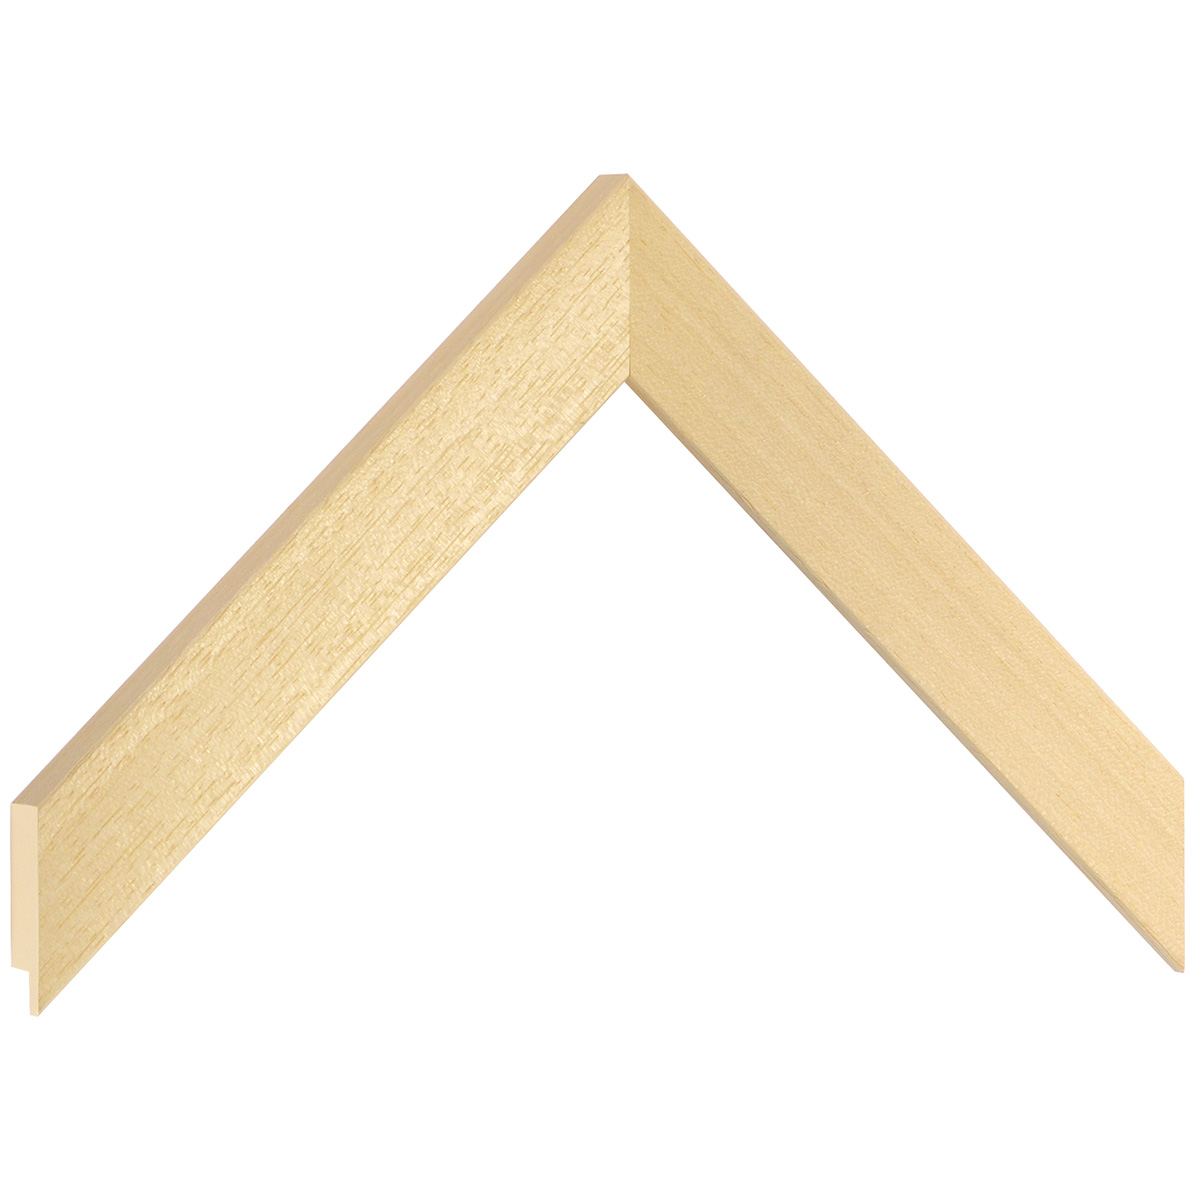 Moulding ayous, width 25mm, height 15mm, bare timber